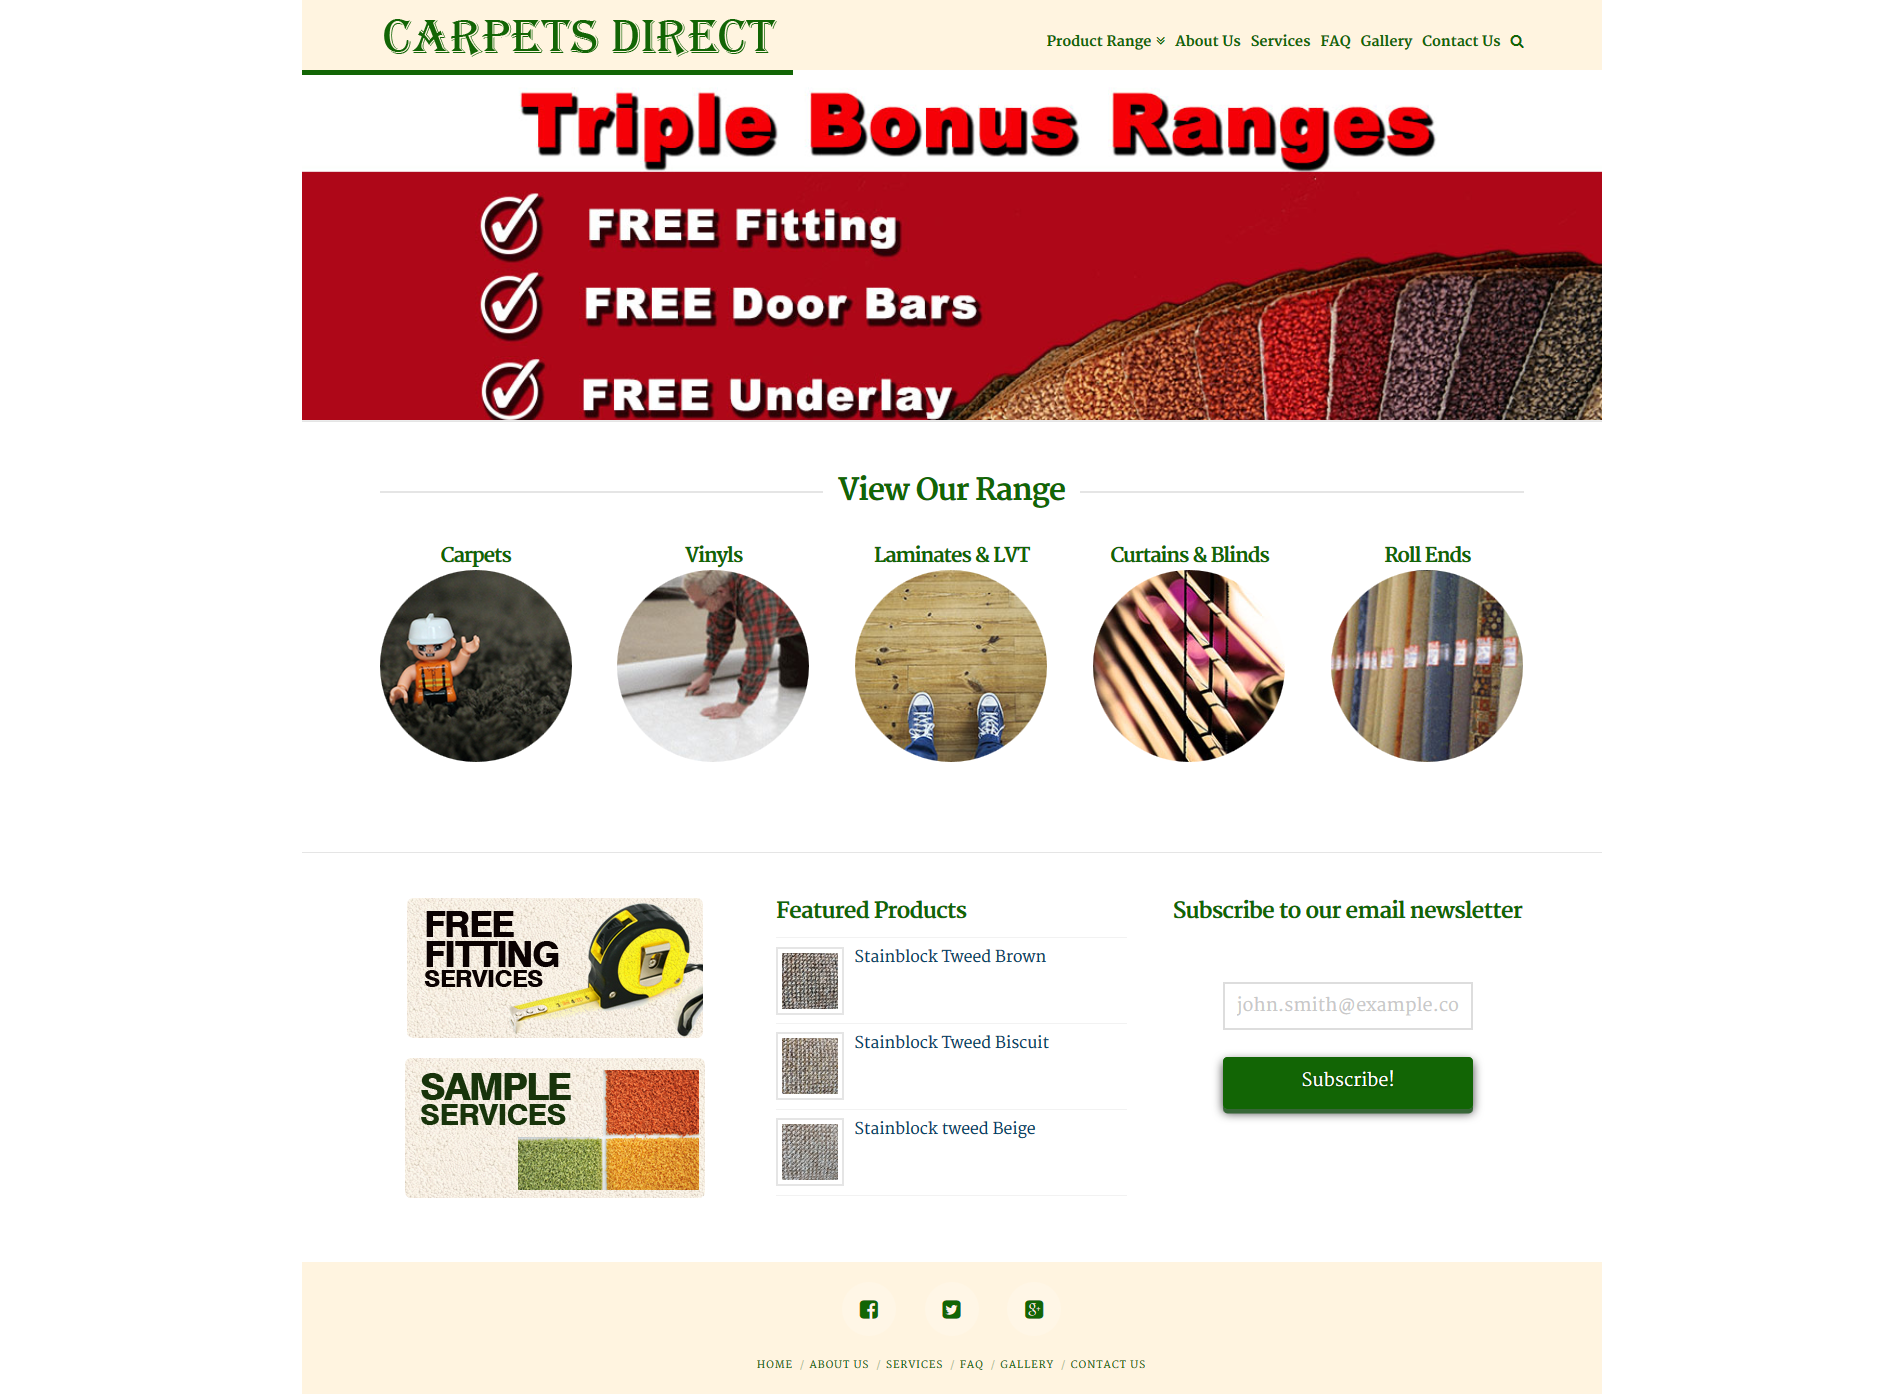 Carpets Direct IOW – Isle of Wight Carpets, Vinyls, Curtains 2015-11-27 11-04-07